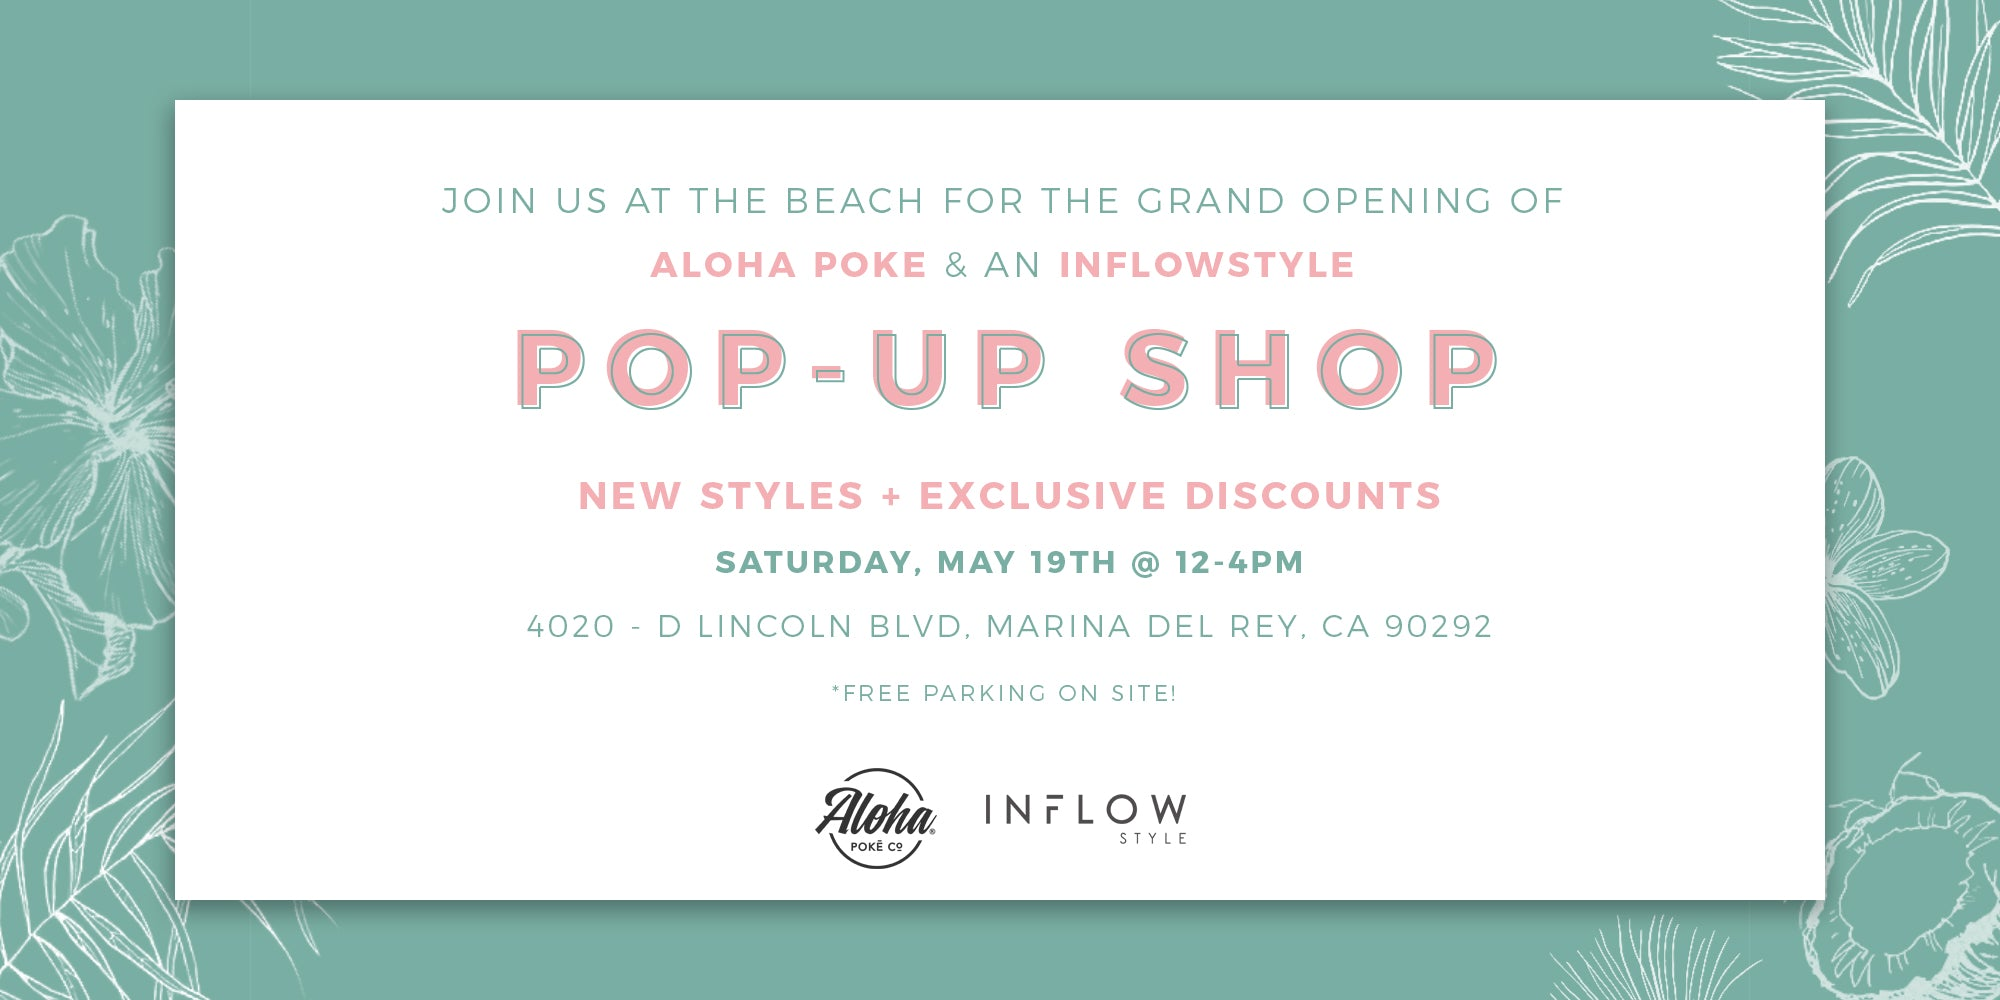 Inflow Pop-Up Shop at Aloha Poke